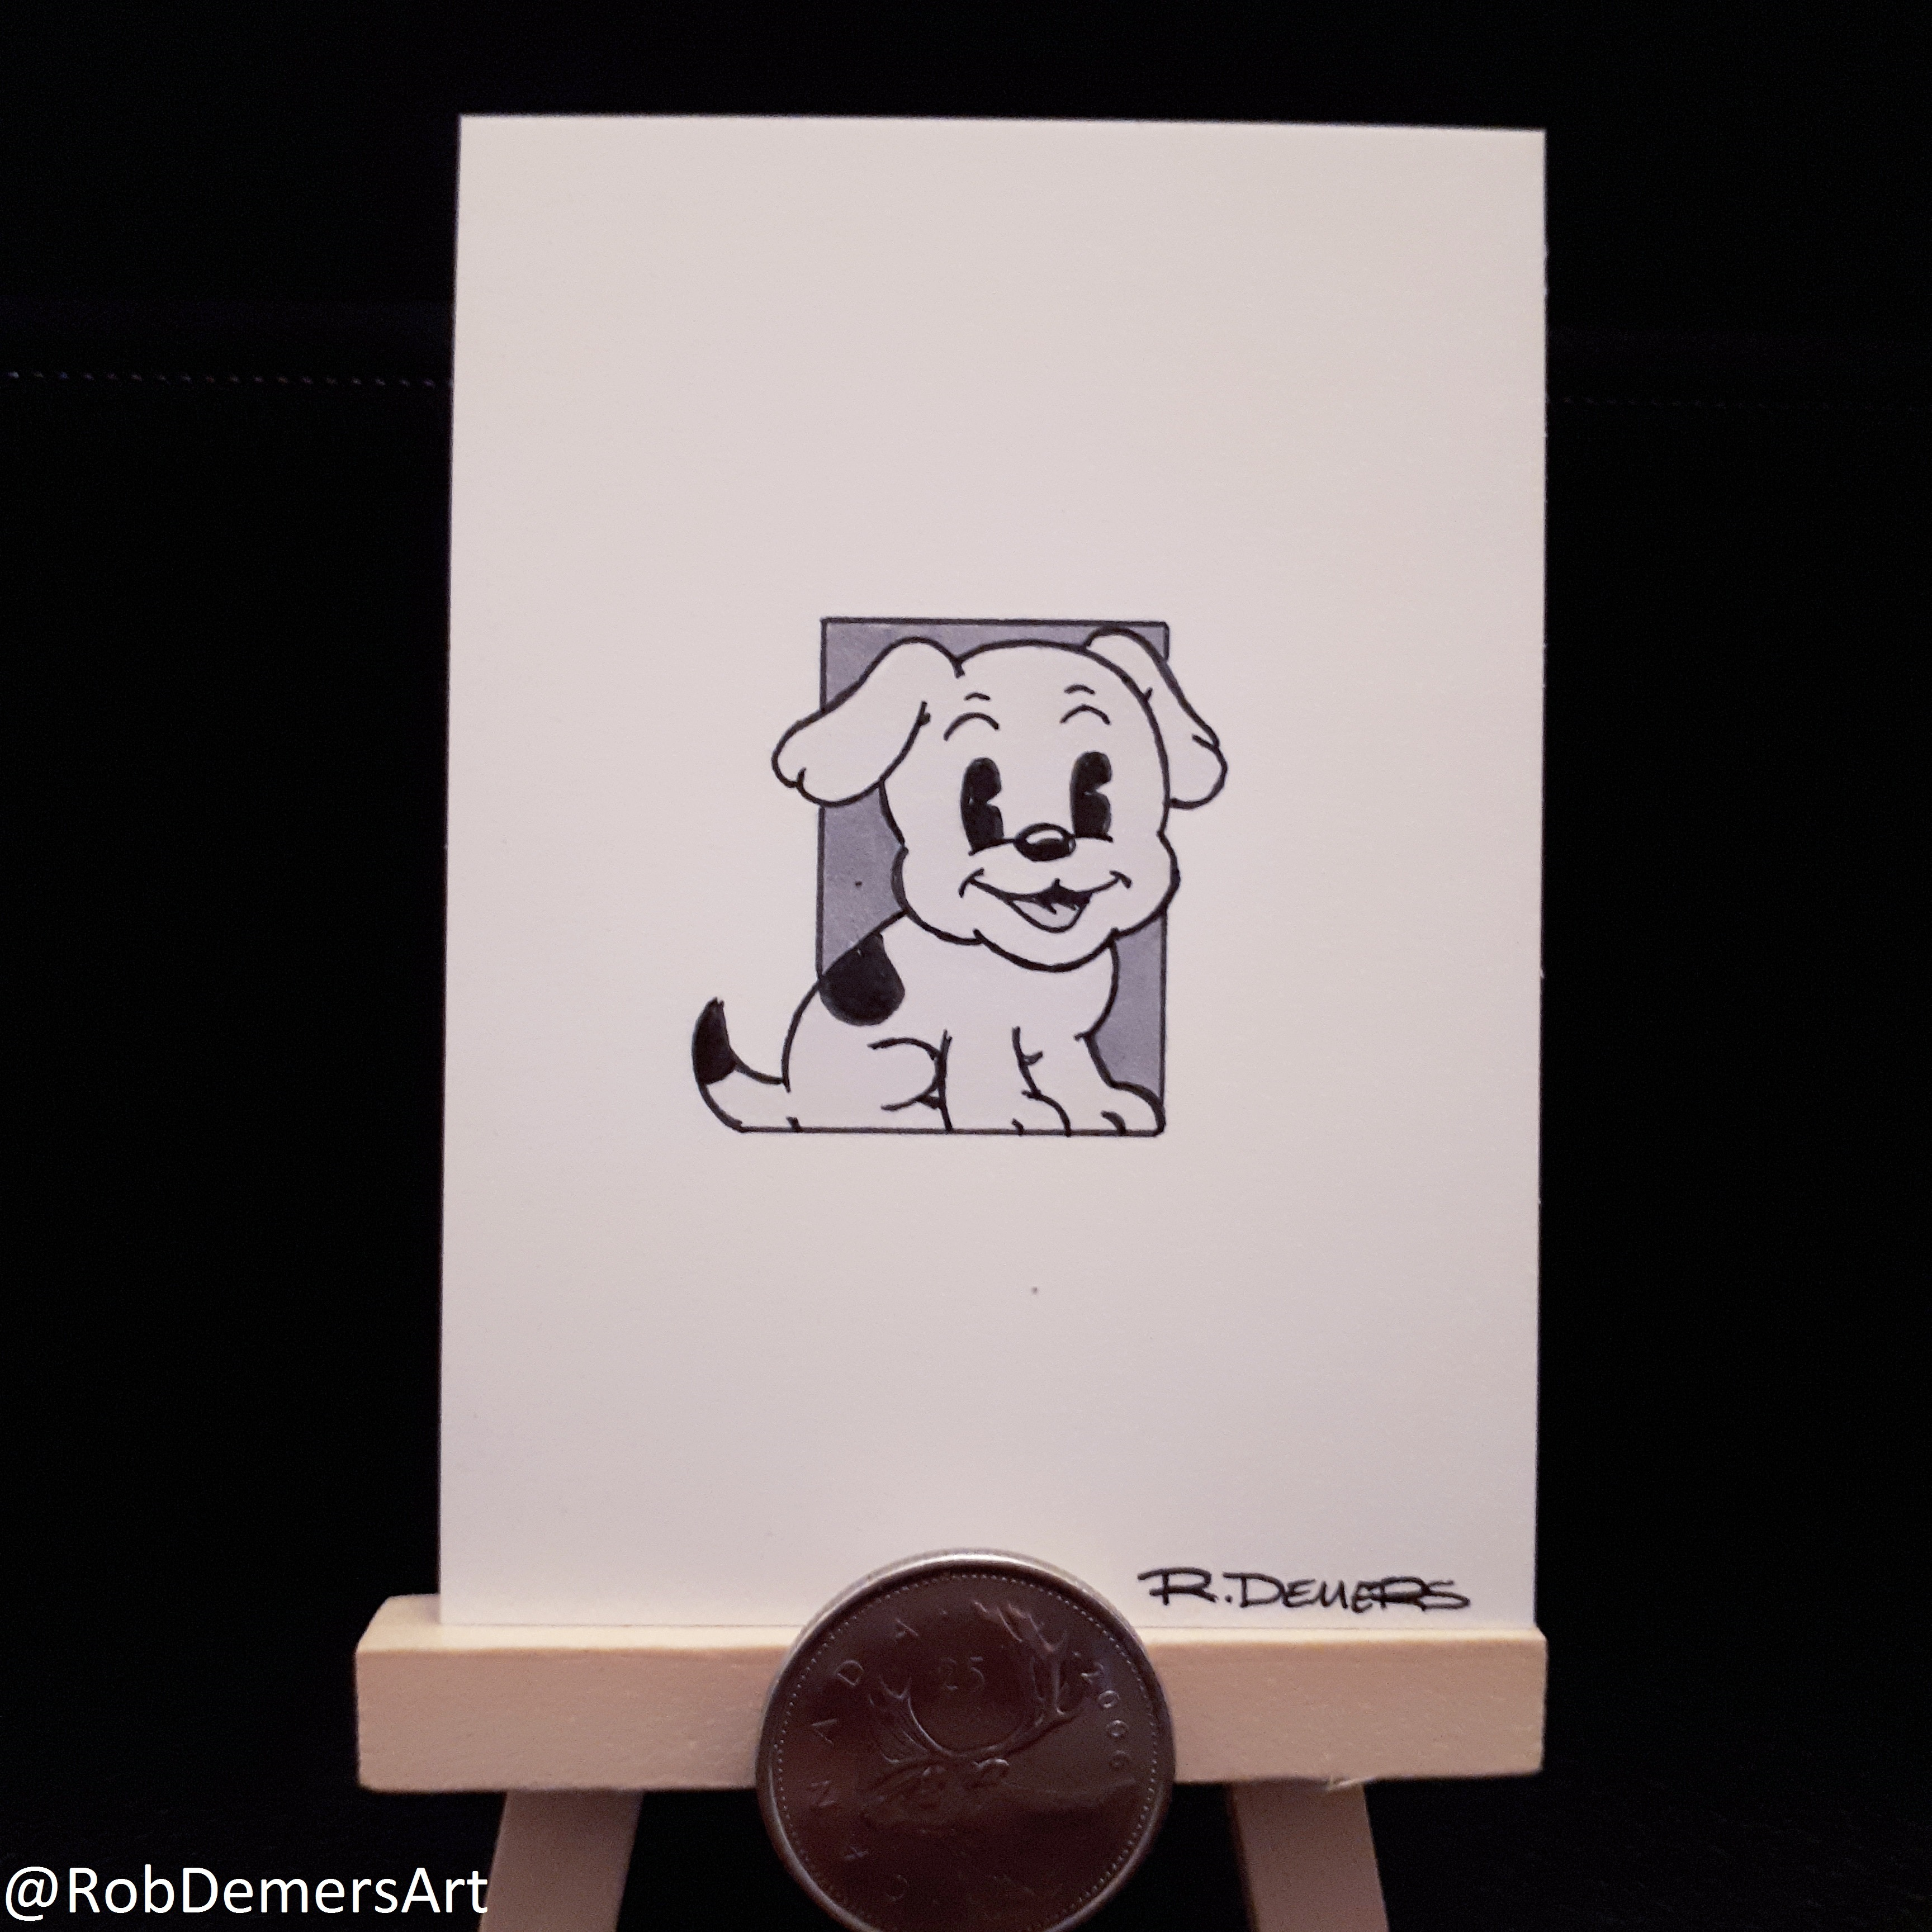 Inktober/Toontober Day 7: Pudgy the Dog